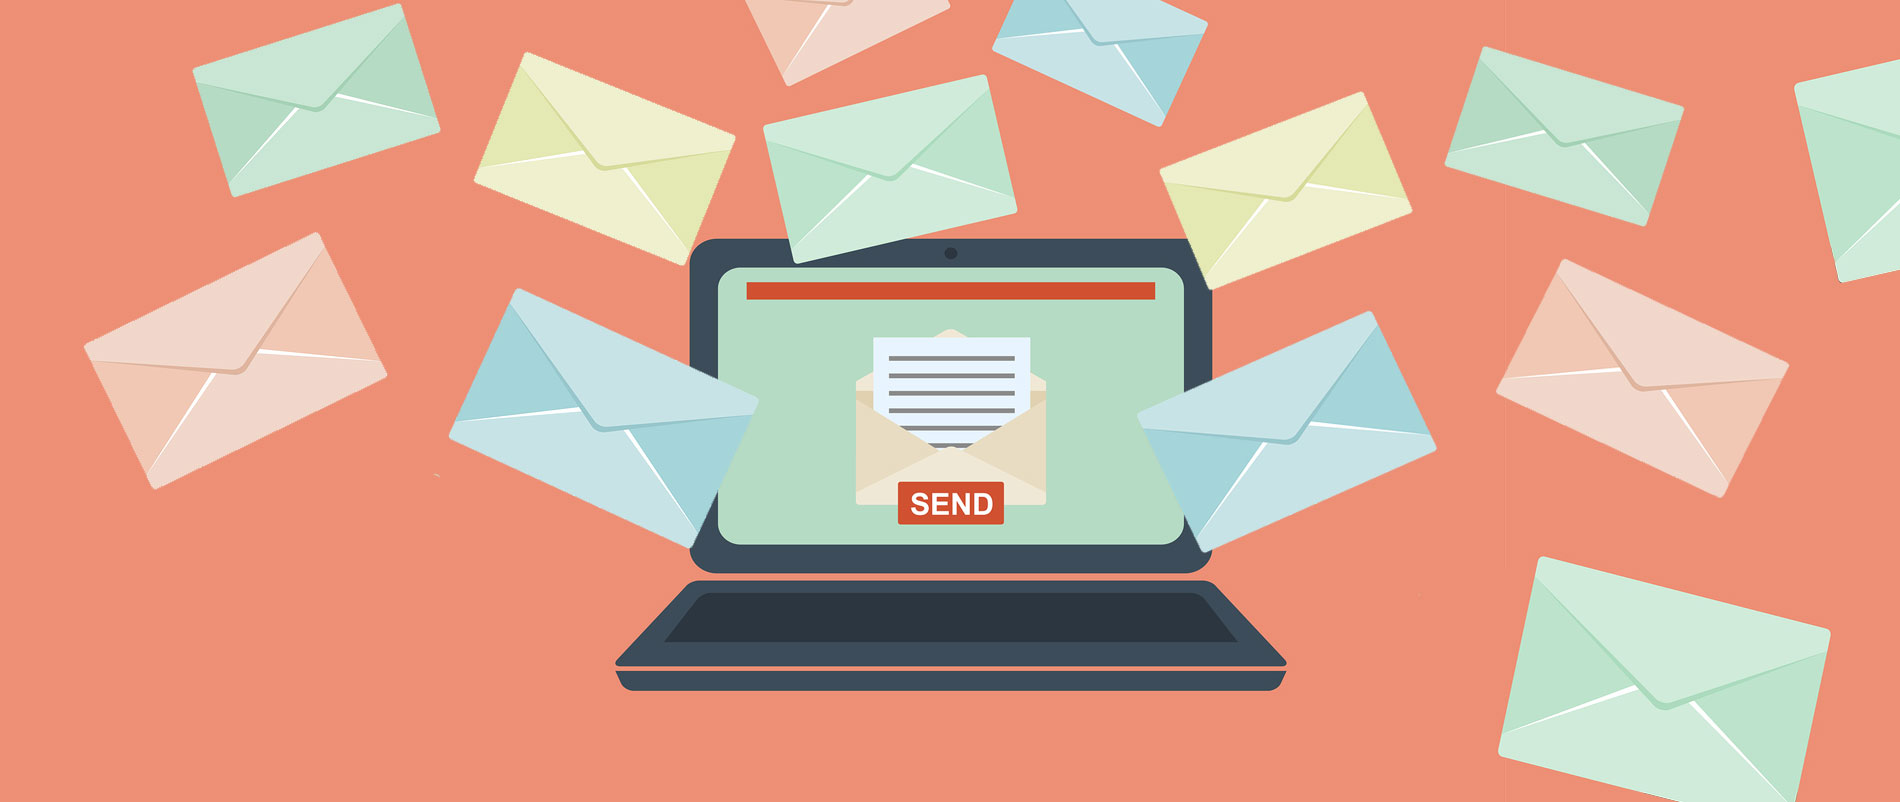 Make Your Marketing Emails Stand Out This Holiday Season